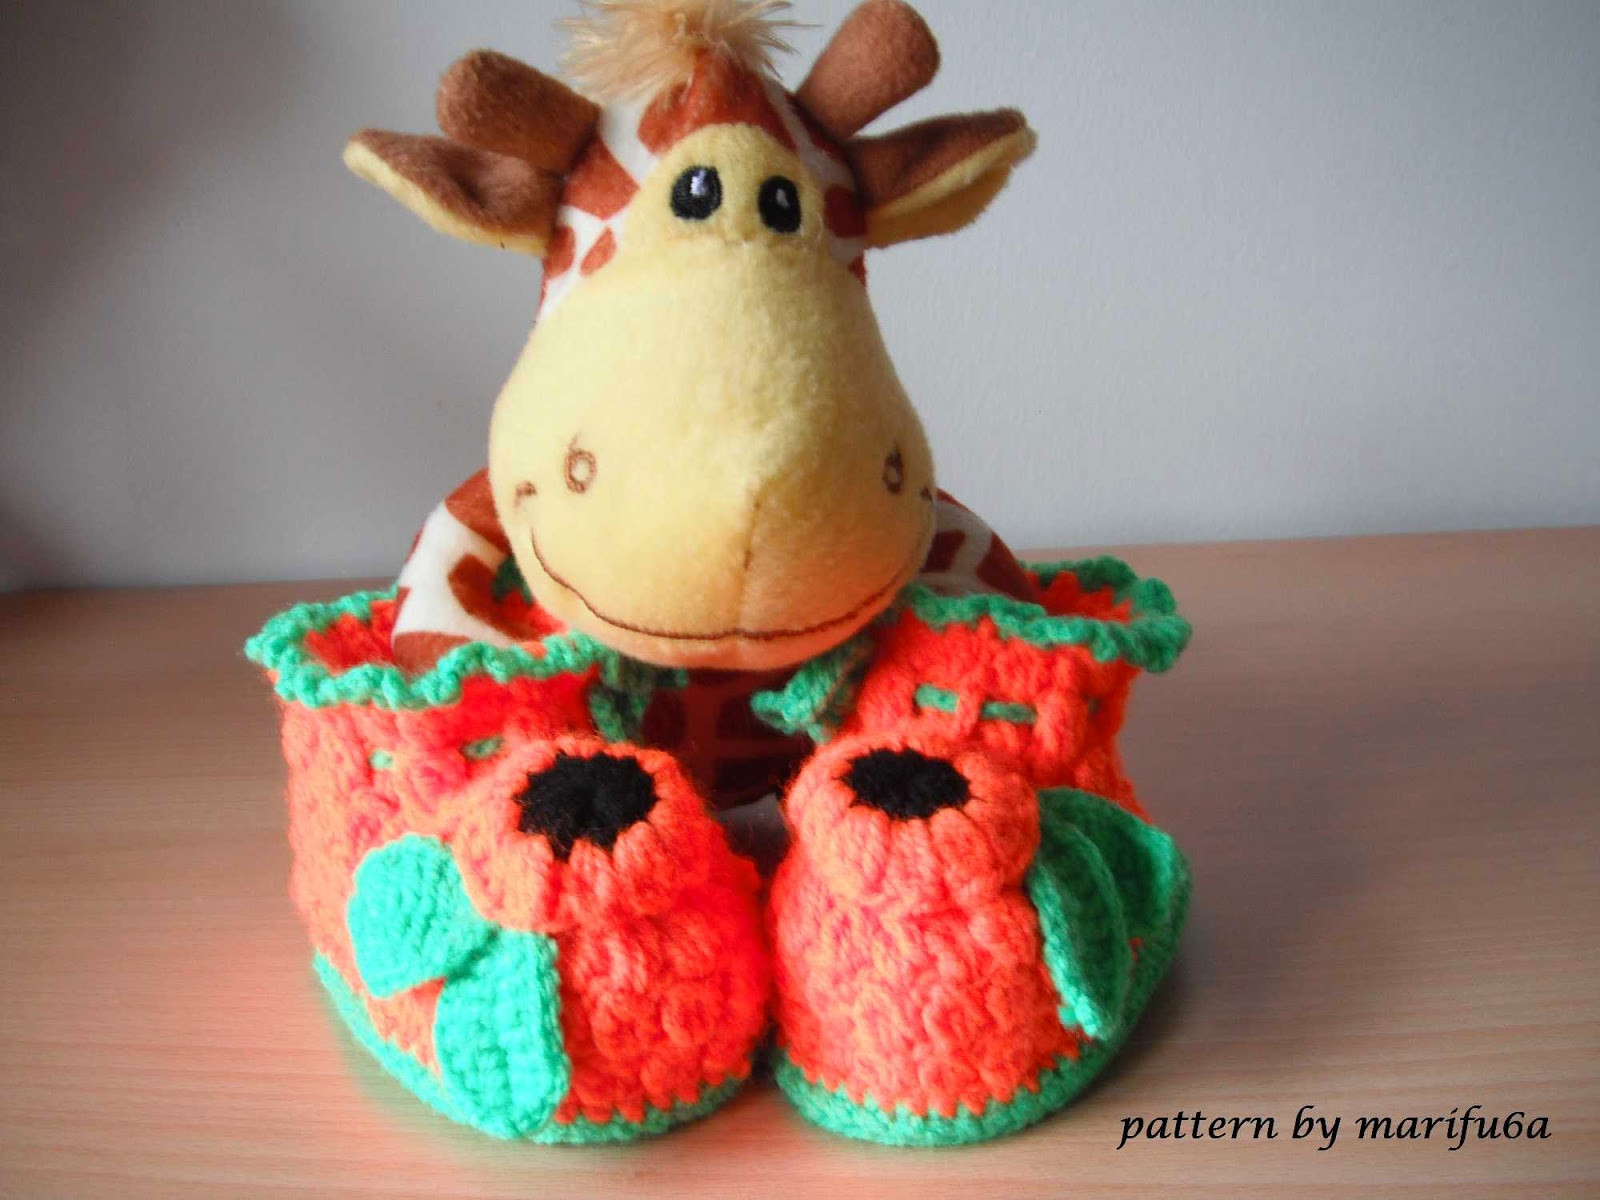 Baby Booties Crochet Pattern for Beginners Best Of Free Crochet Patterns and Video Tutorials How to Crochet Of Perfect 47 Ideas Baby Booties Crochet Pattern for Beginners